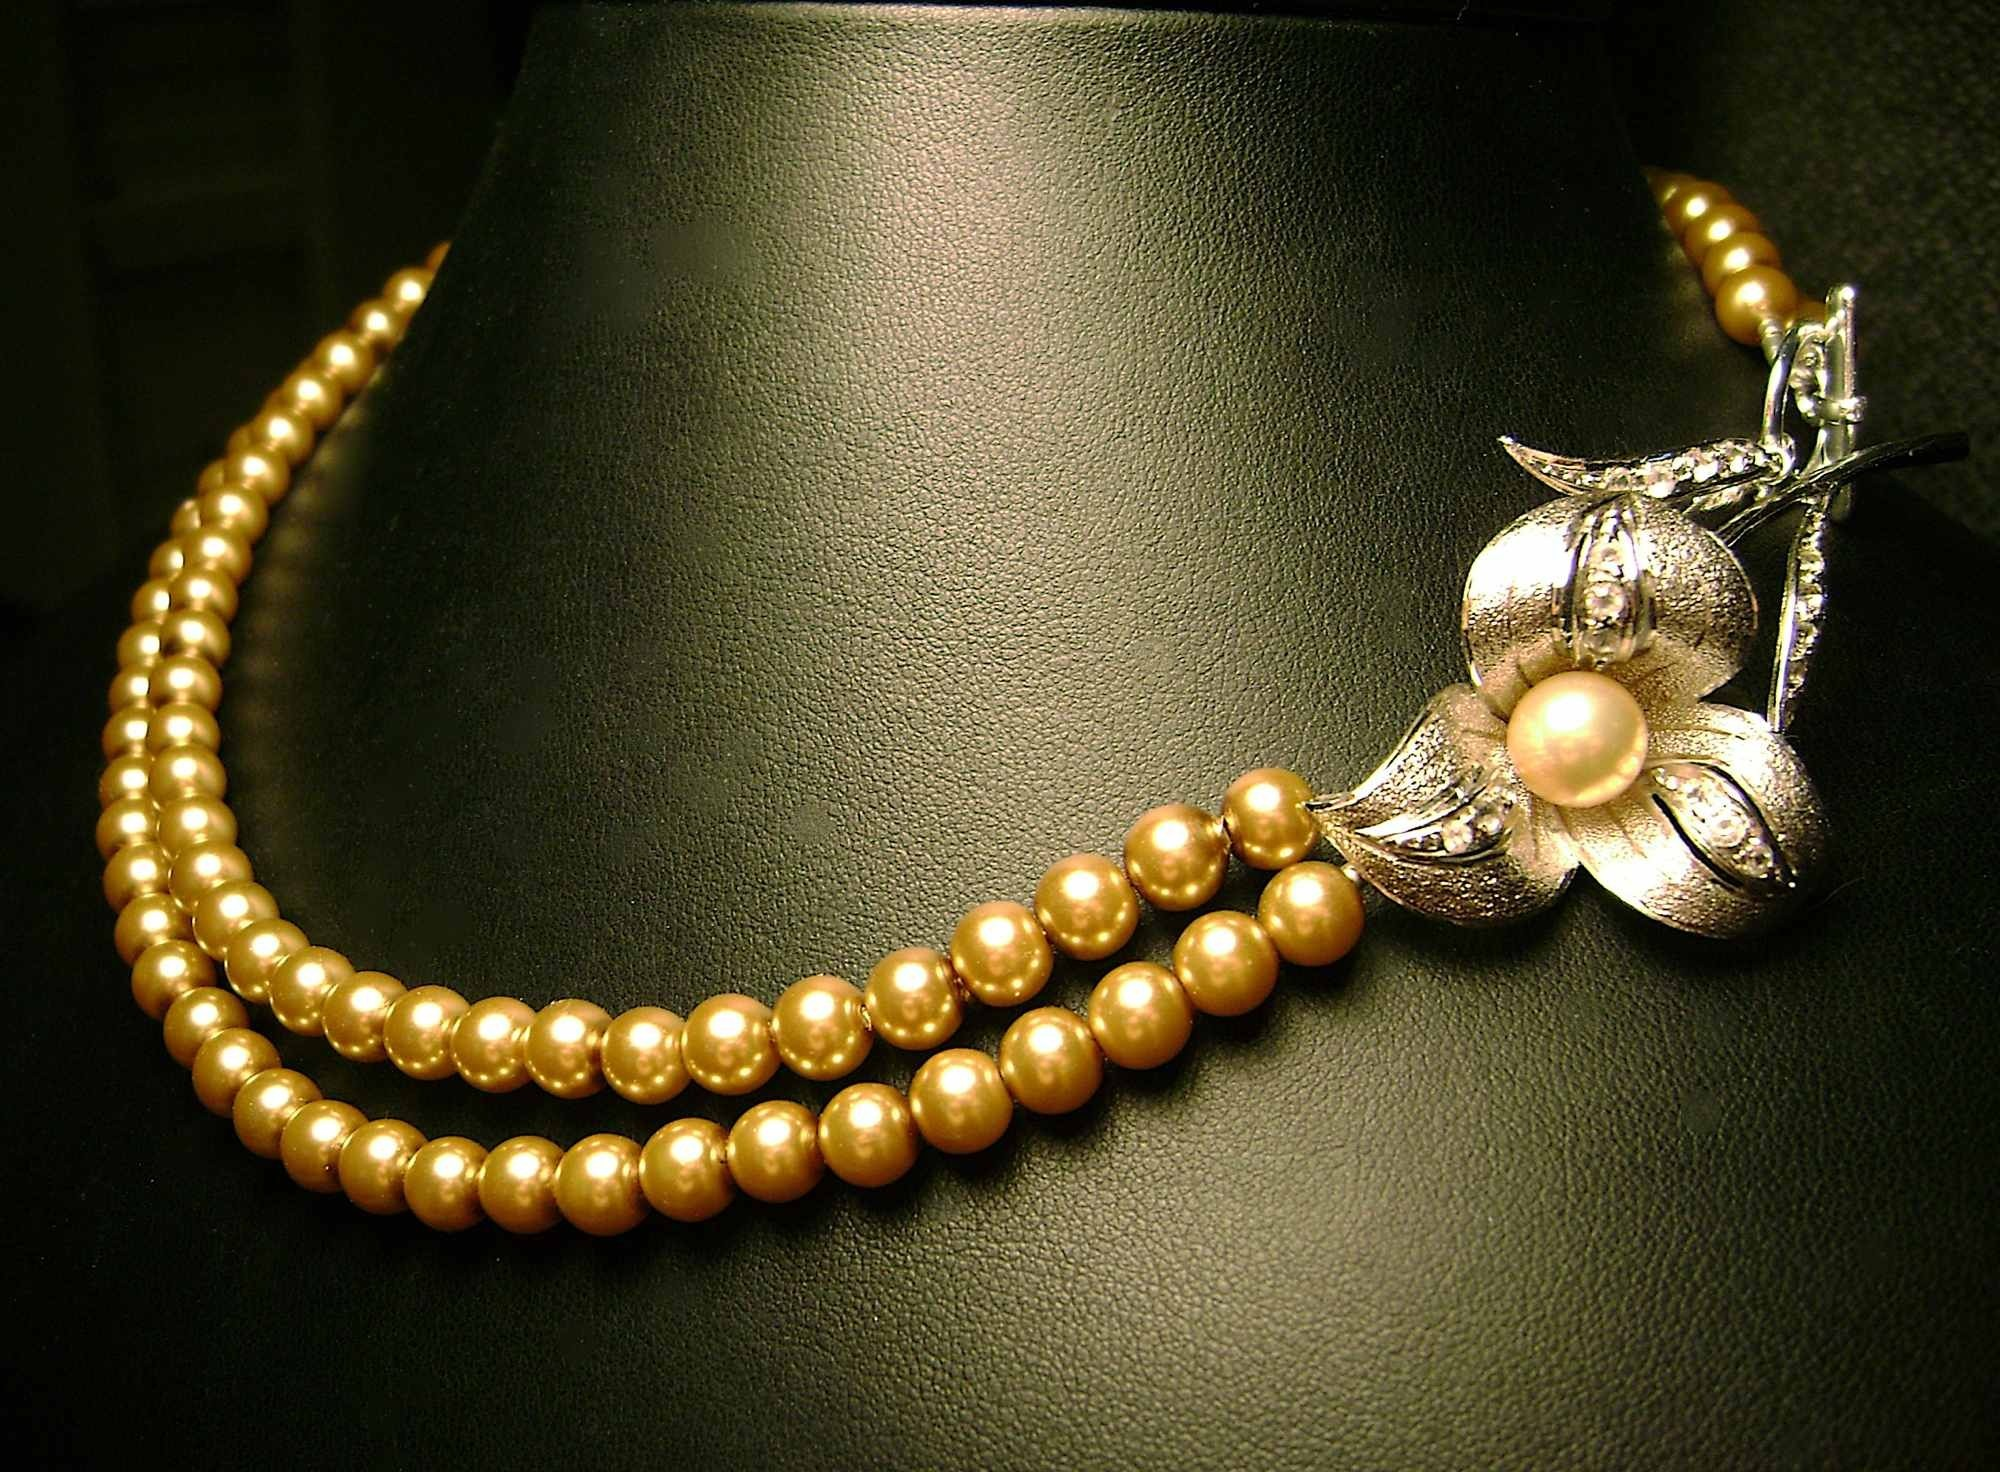 Flower, Jewelry, Elegant, Vintage, Pearl, Necklace, Handmade, Etsy, Damselle jewelry, Flowers & Decor, Necklaces